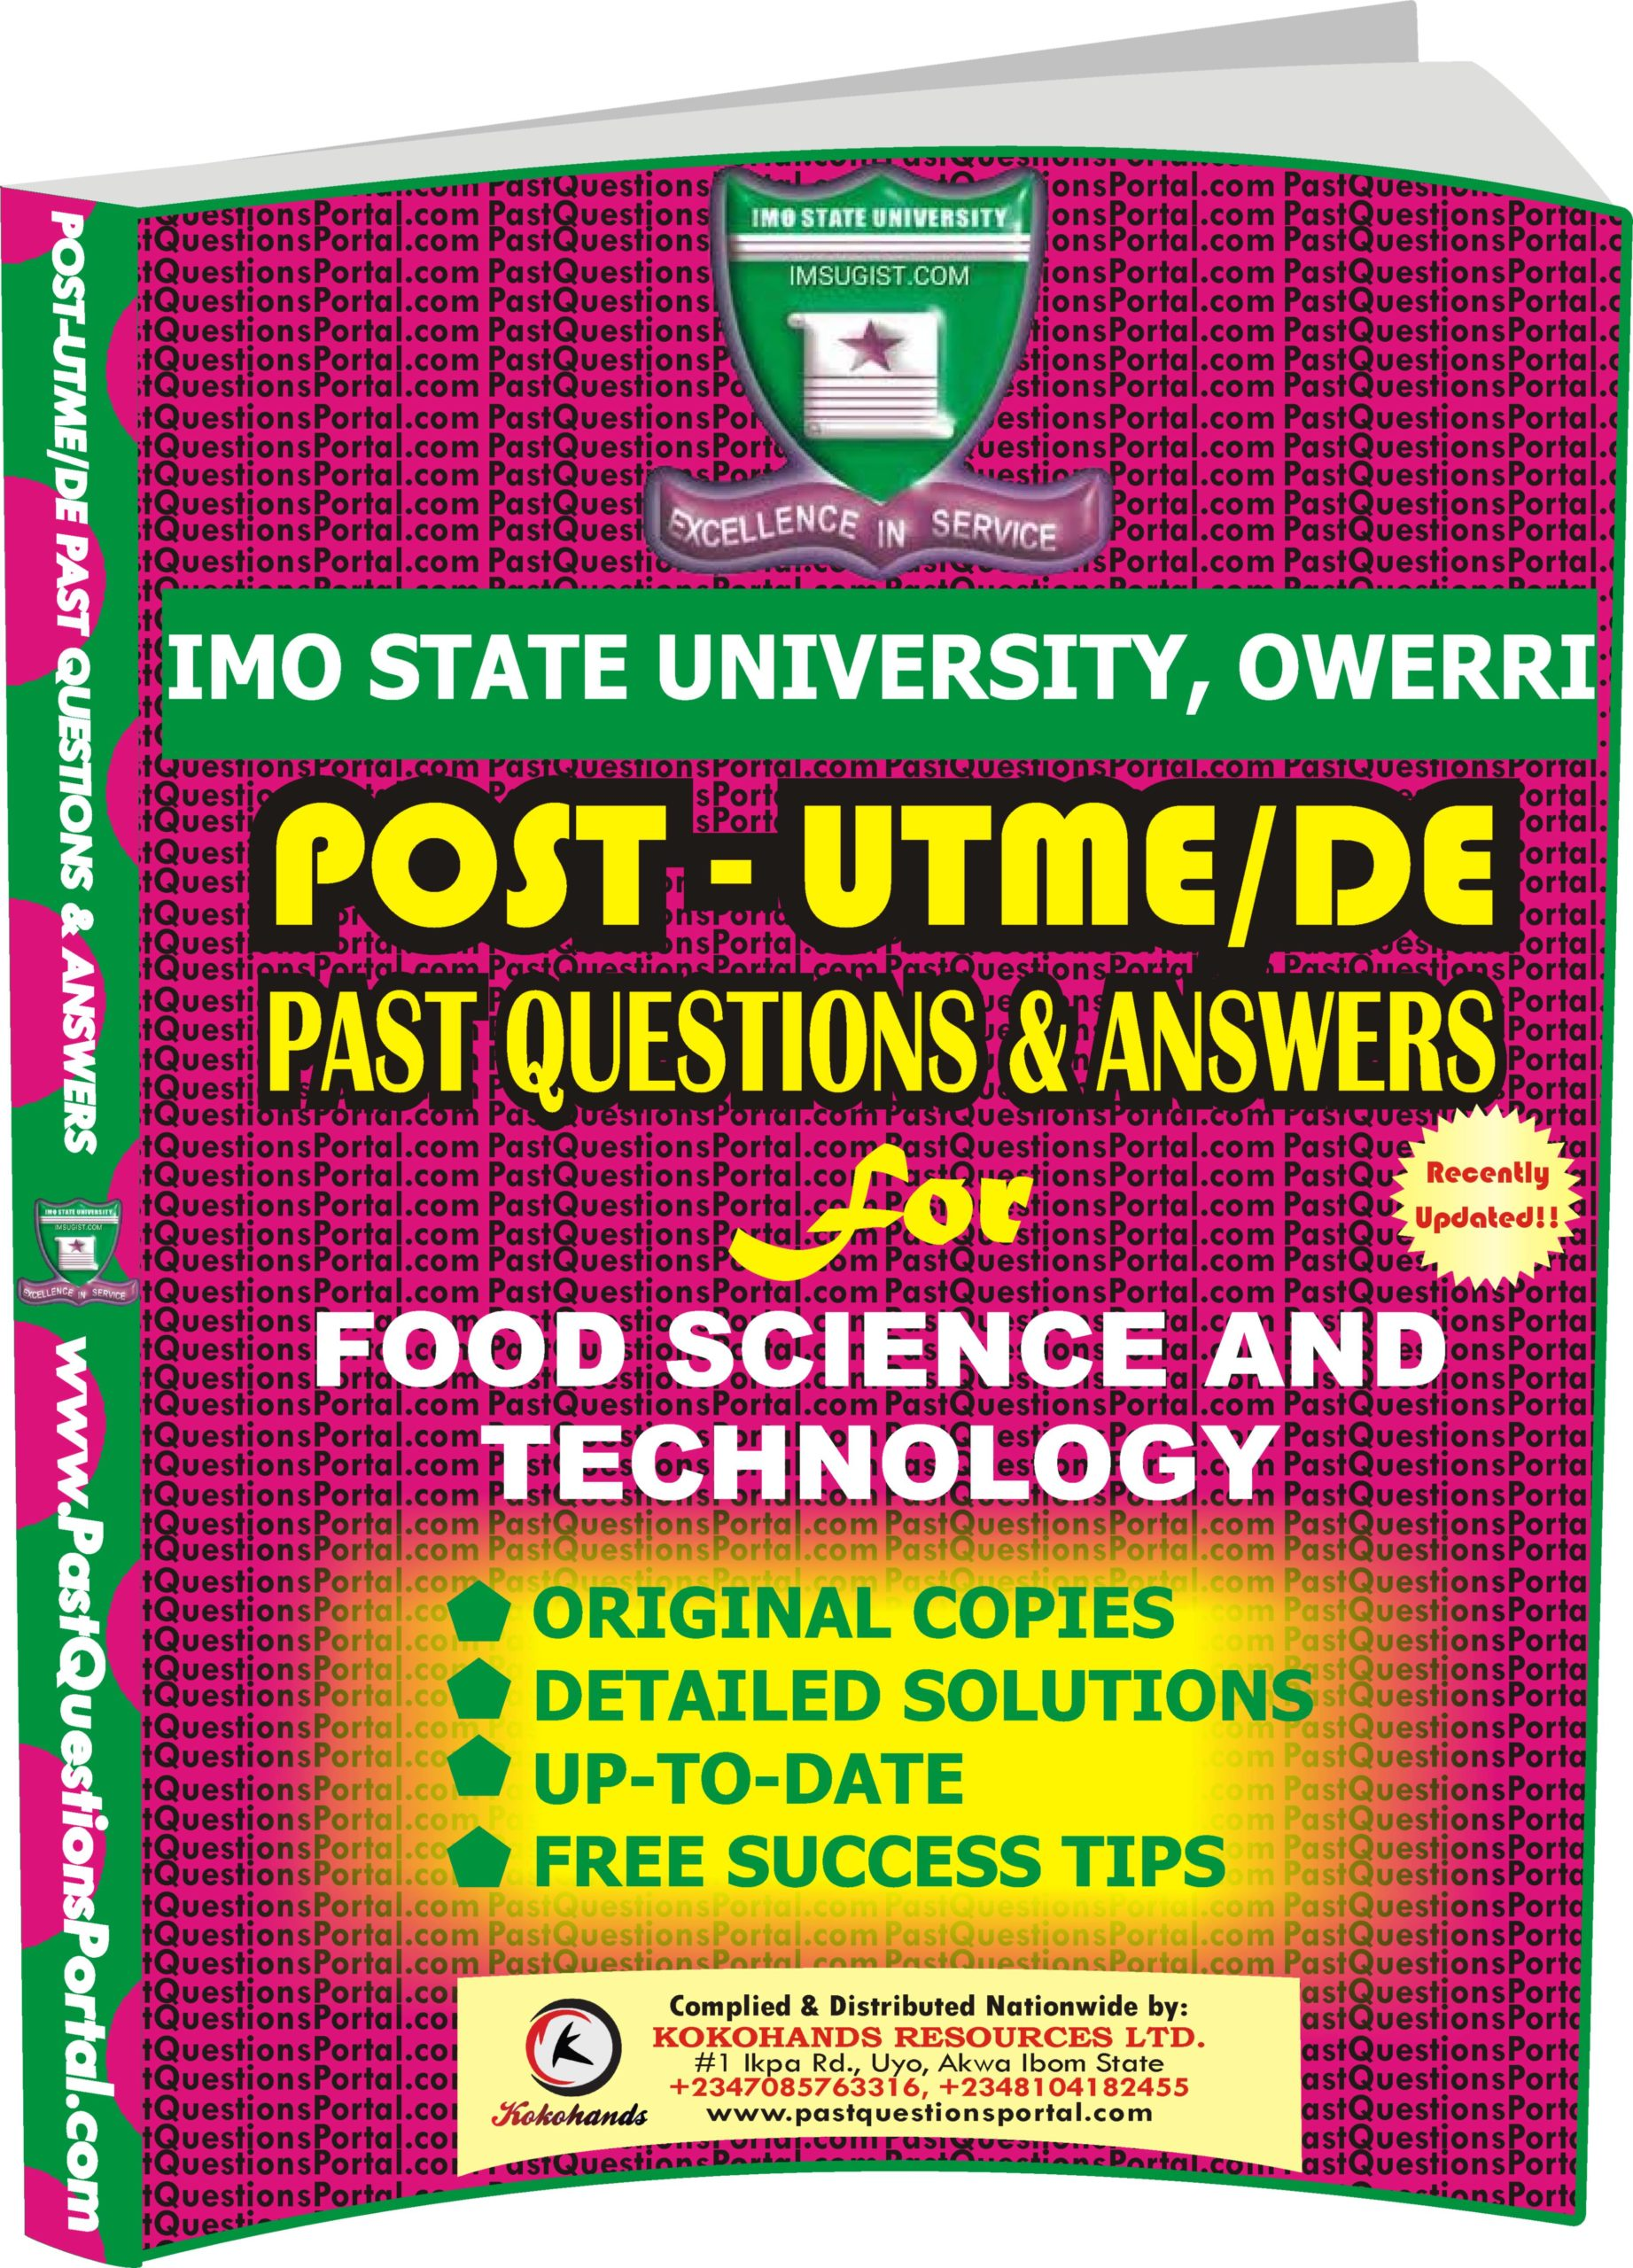 IMSU Post UTME Past Questions for Food Science and Technology